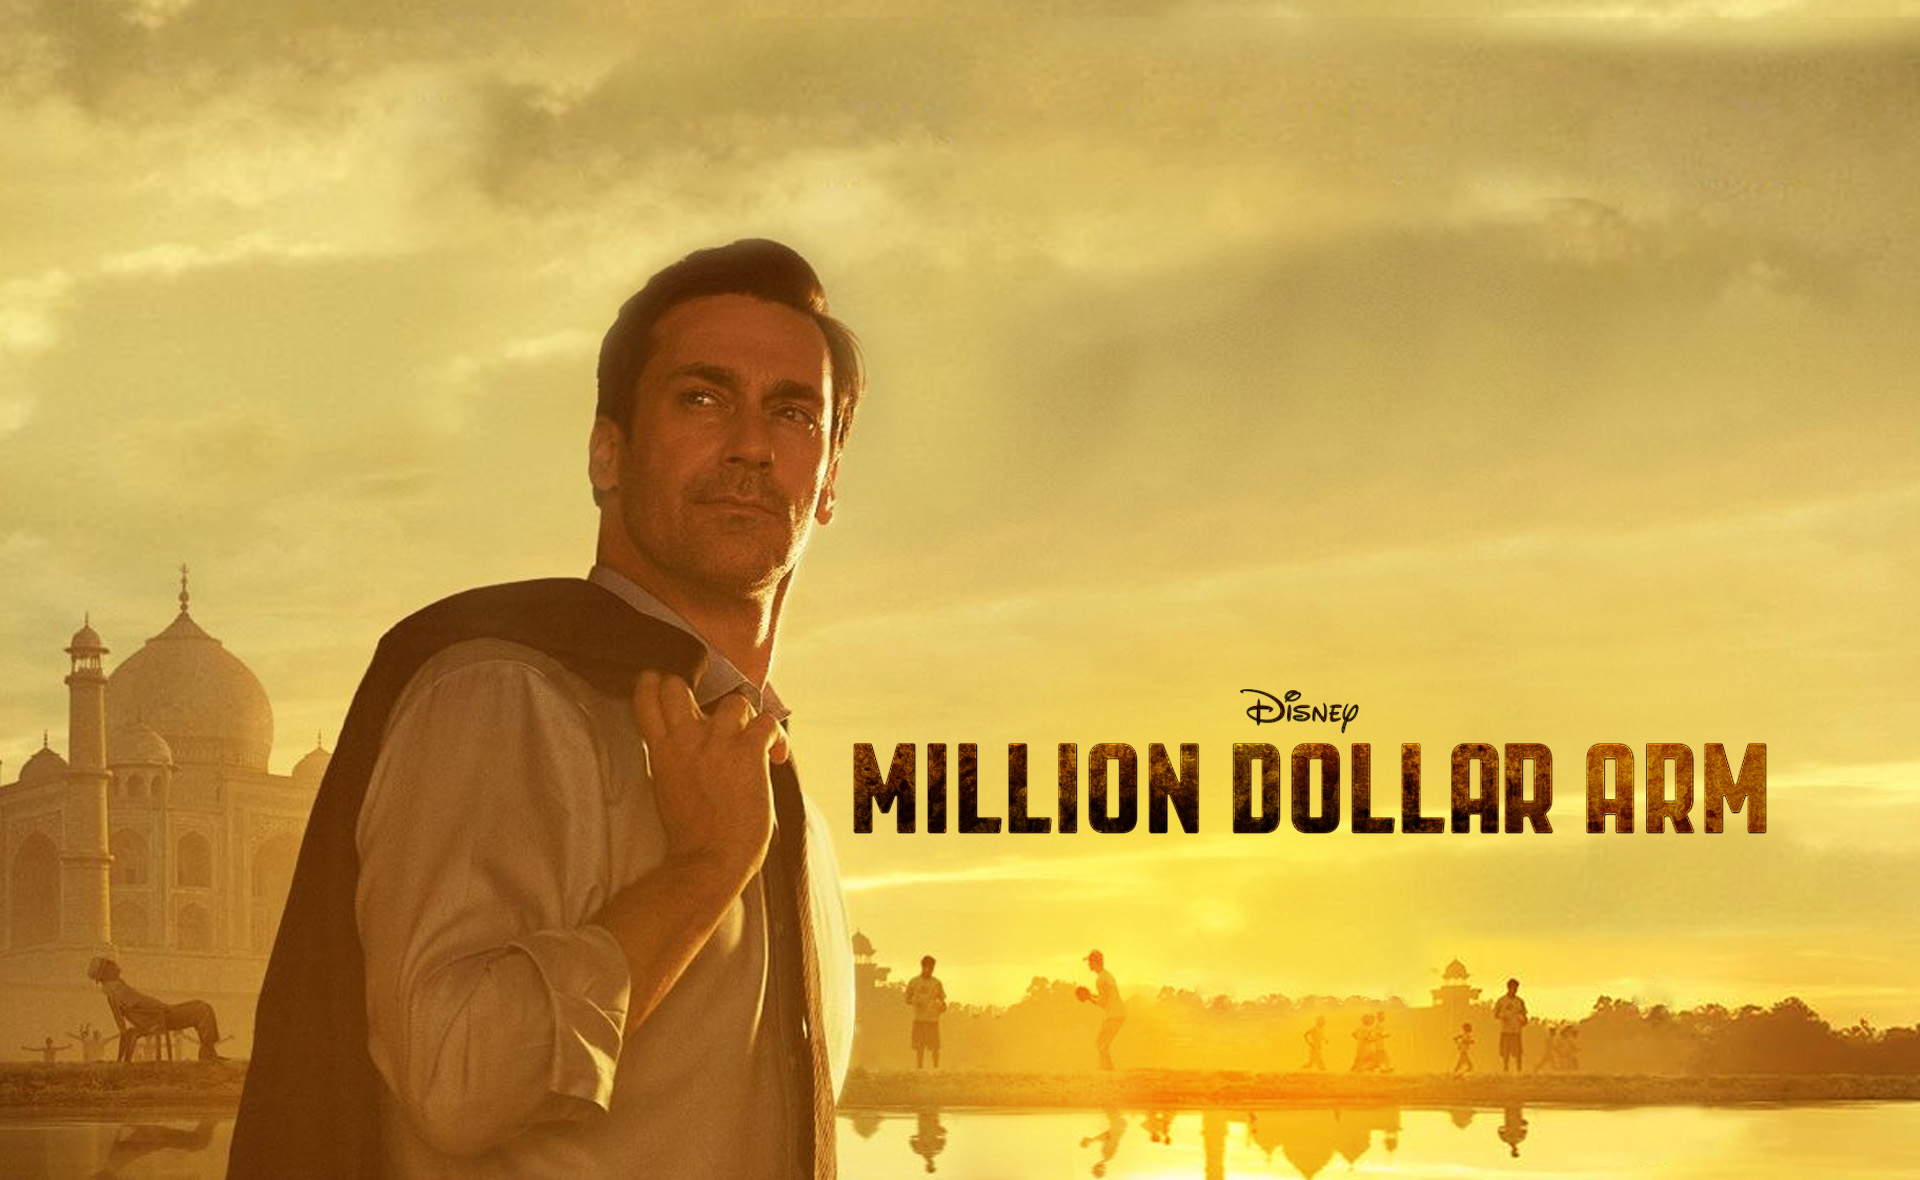 Million Dollar Arm (2014)dvdplanetstorepk